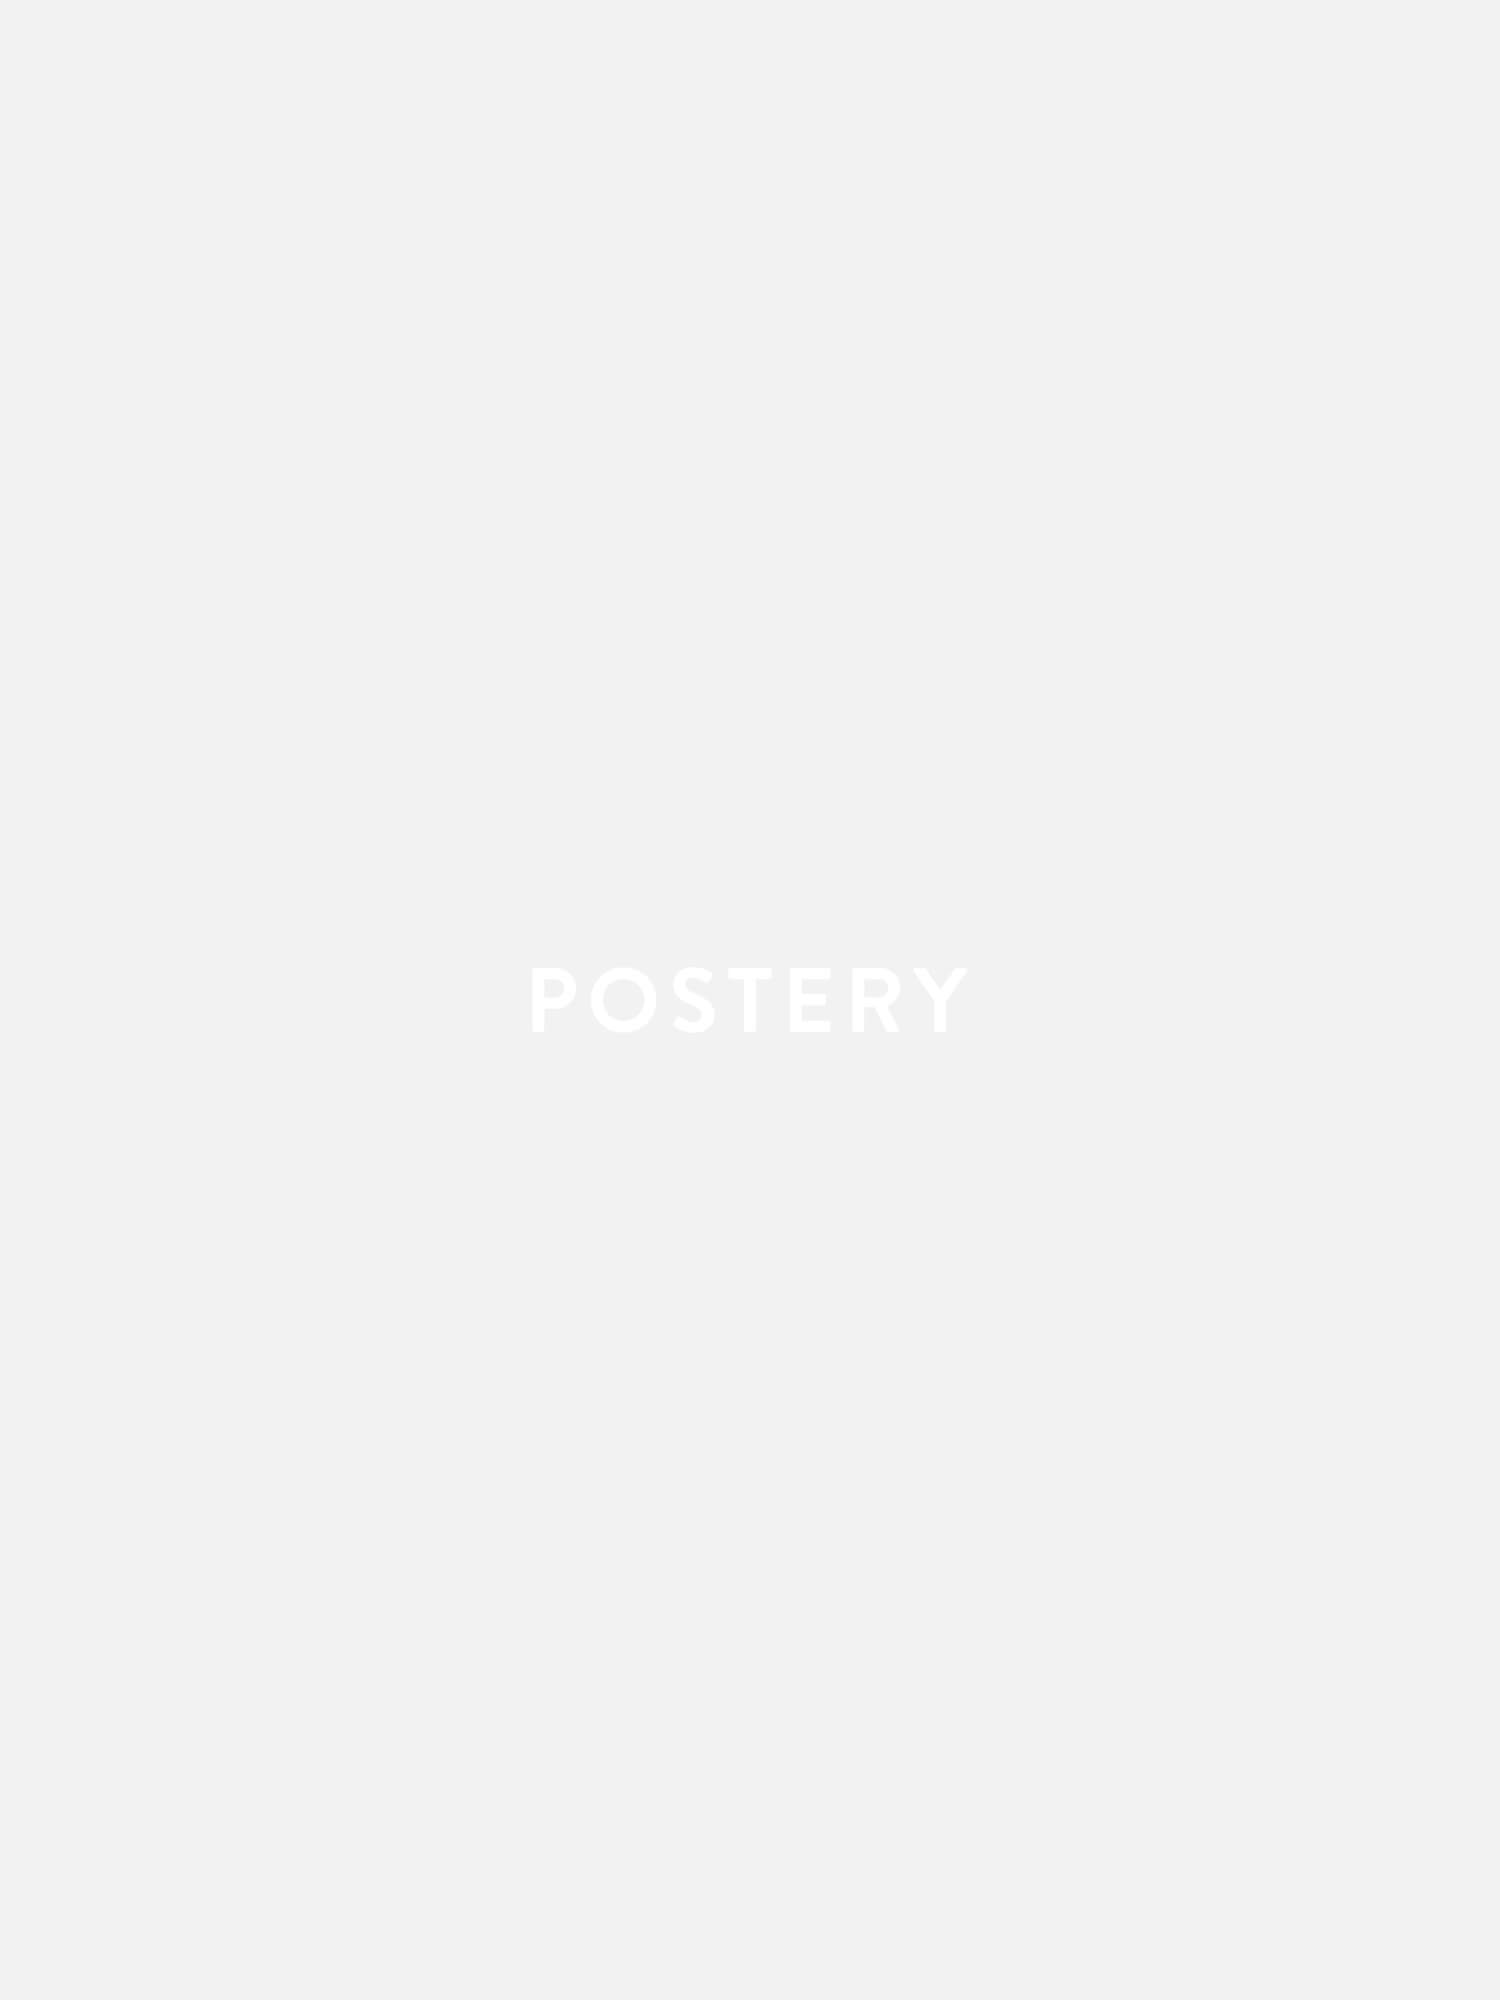 Chanel No5 Poster